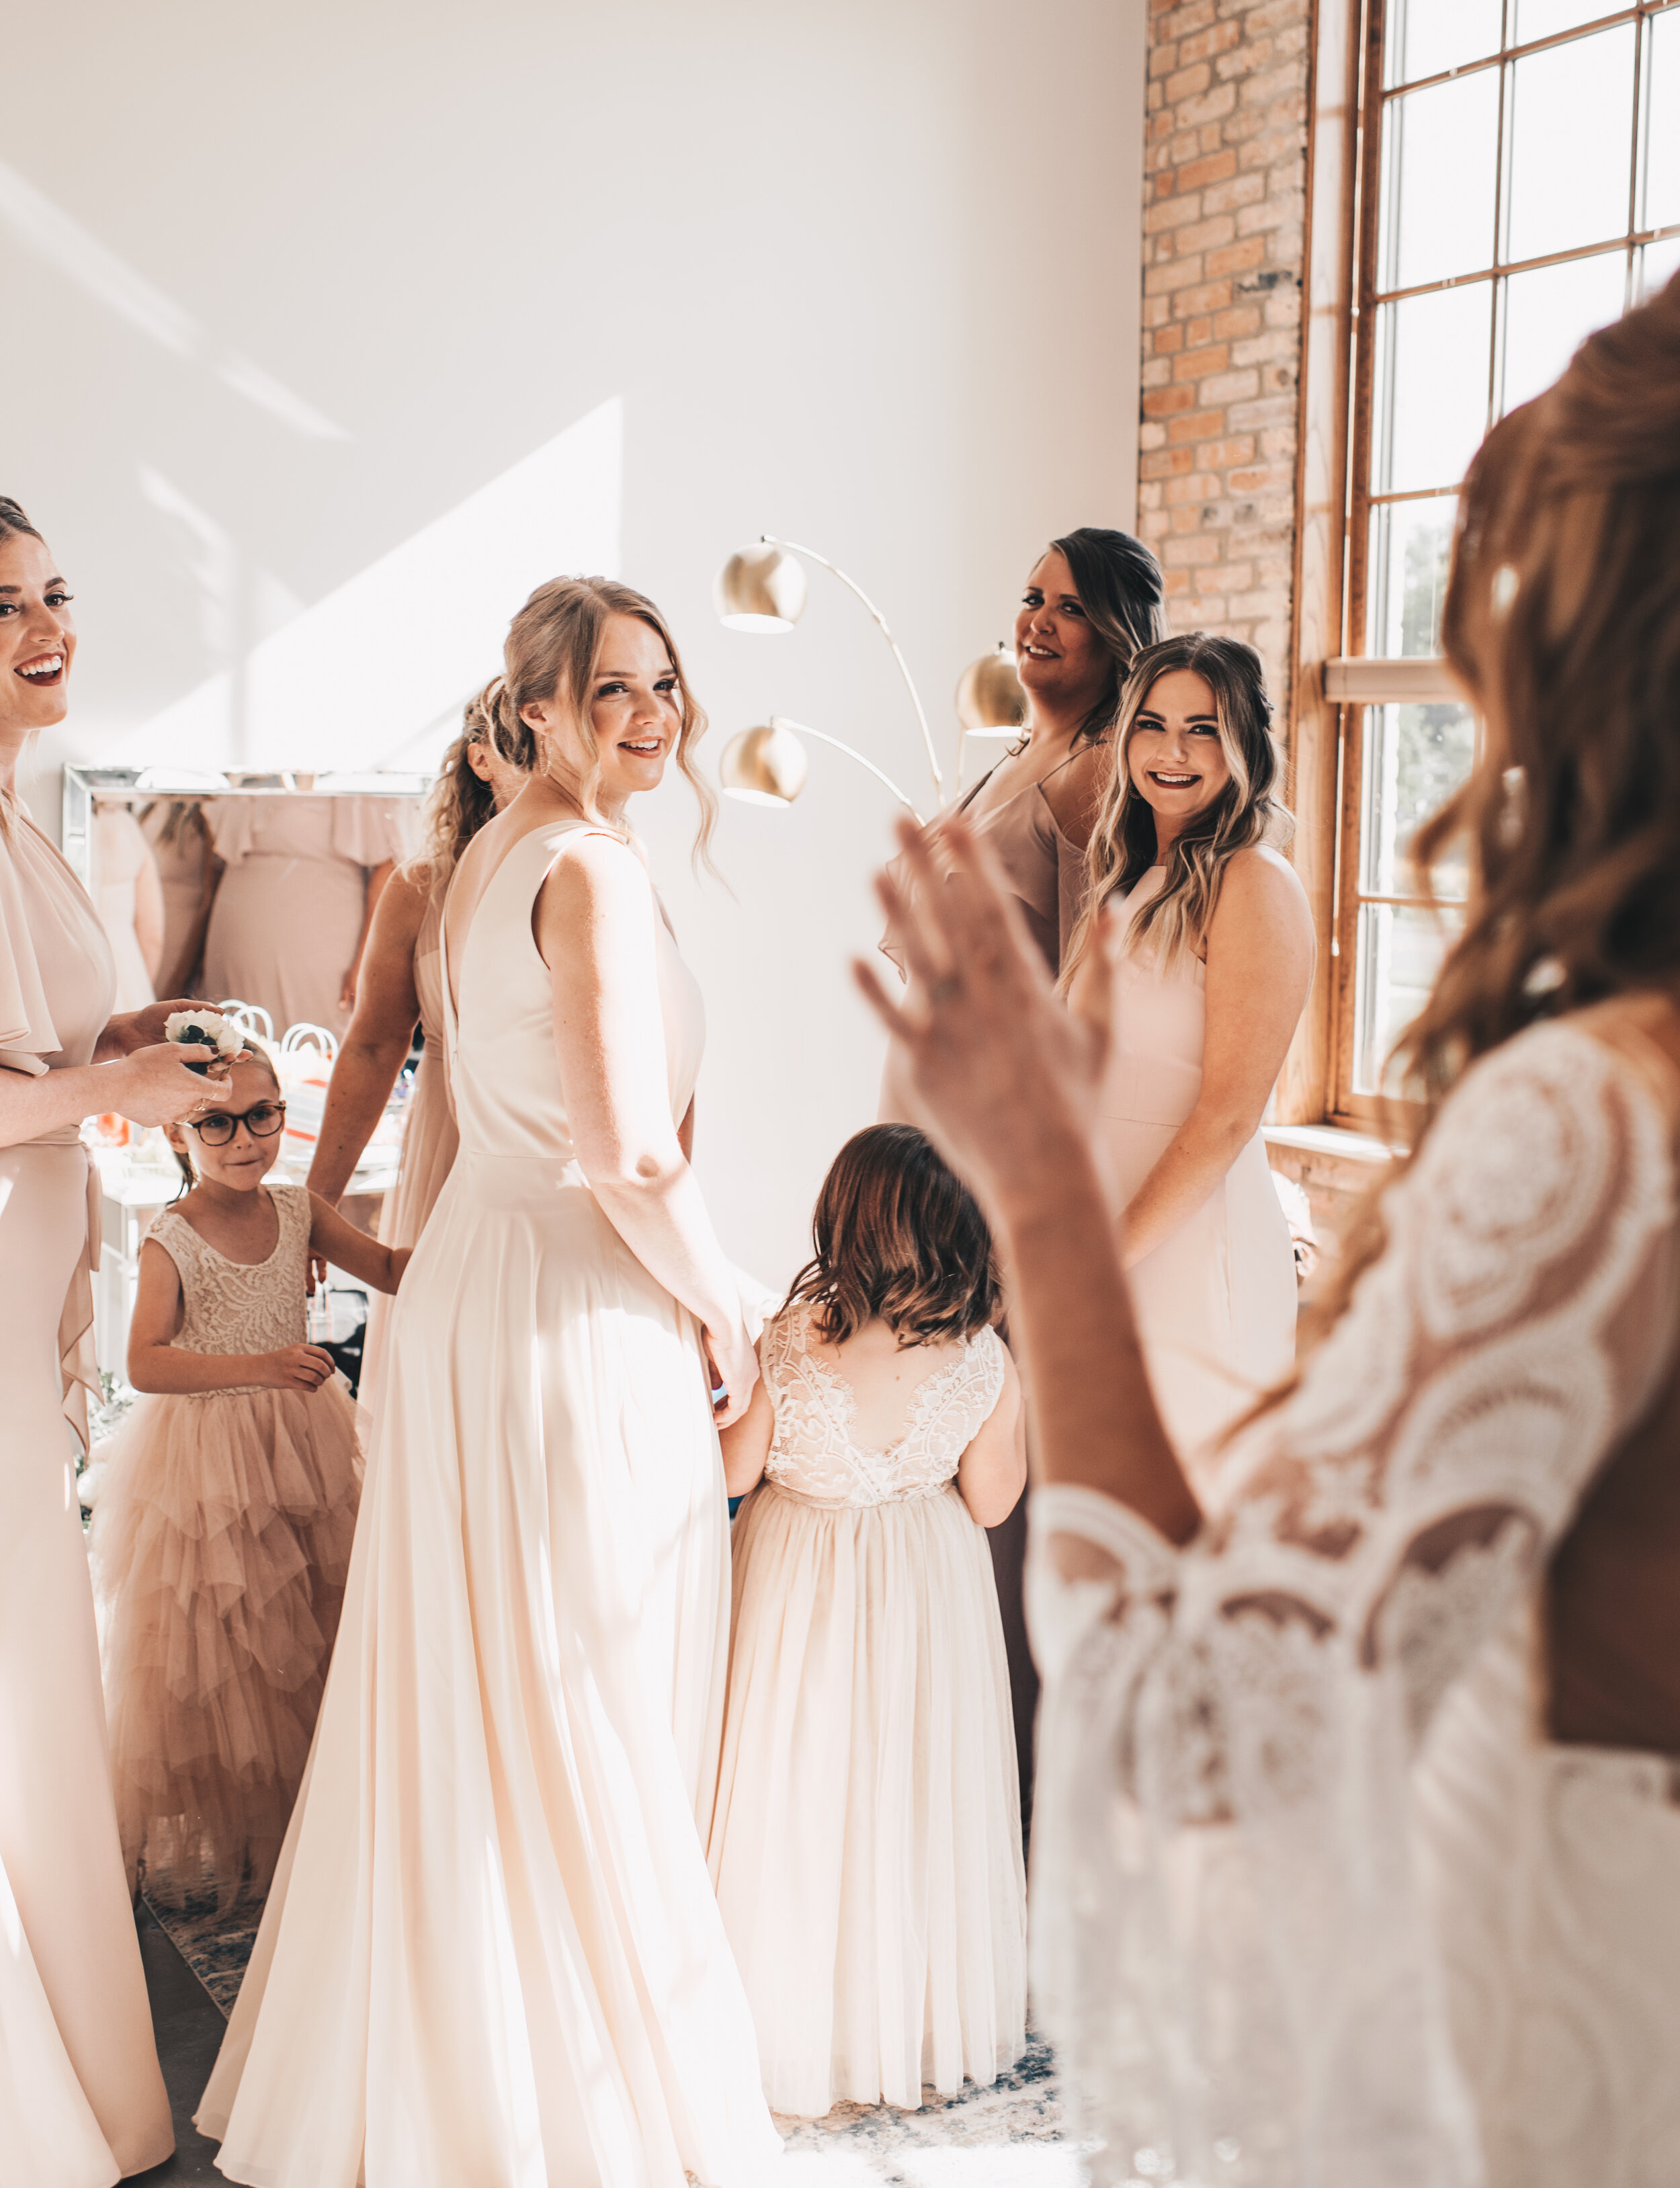 Modern Industrial Wedding, The Brix on the Fox, The BRIX, Wedding Detail Photos, Modern Midwest Wedding, The Brix on the Fox Wedding, The BRIX Wedding, Bridesmaids First Look Photos